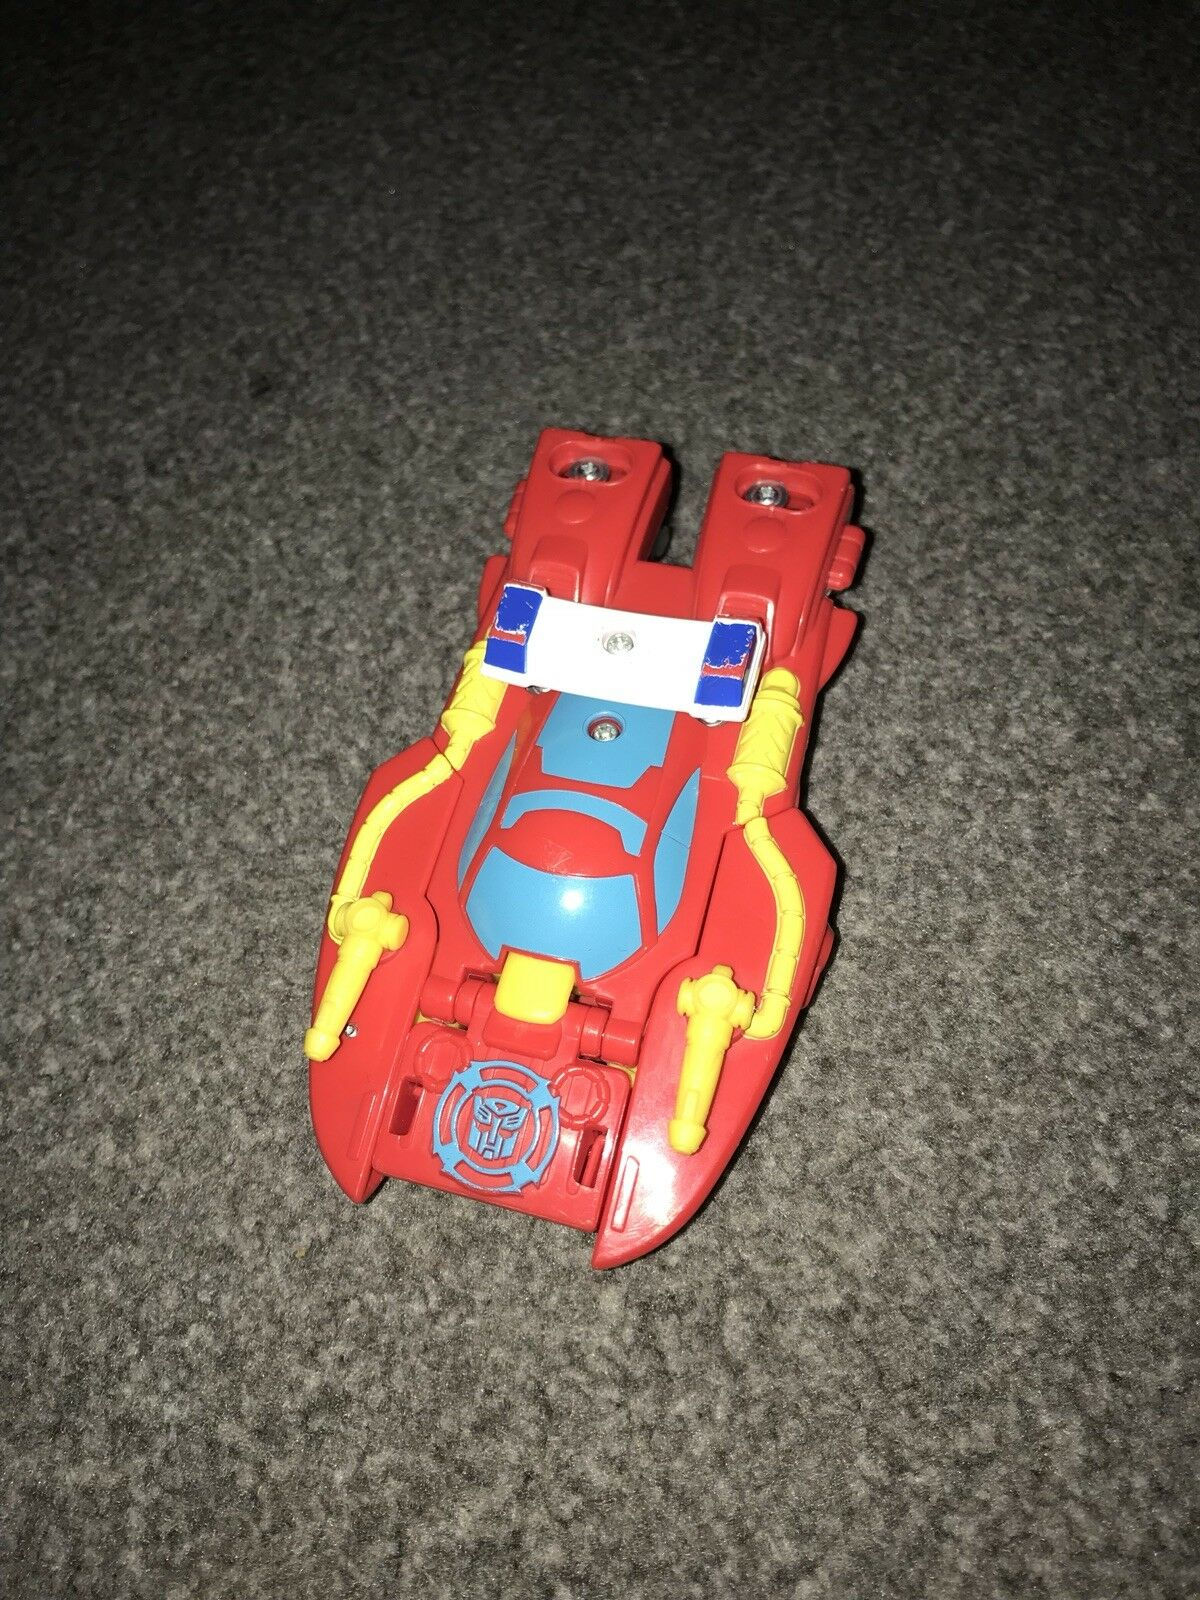 Playskool Heroes Transformers Rescue Bots HEATWAVE Fire boat. Very Rare